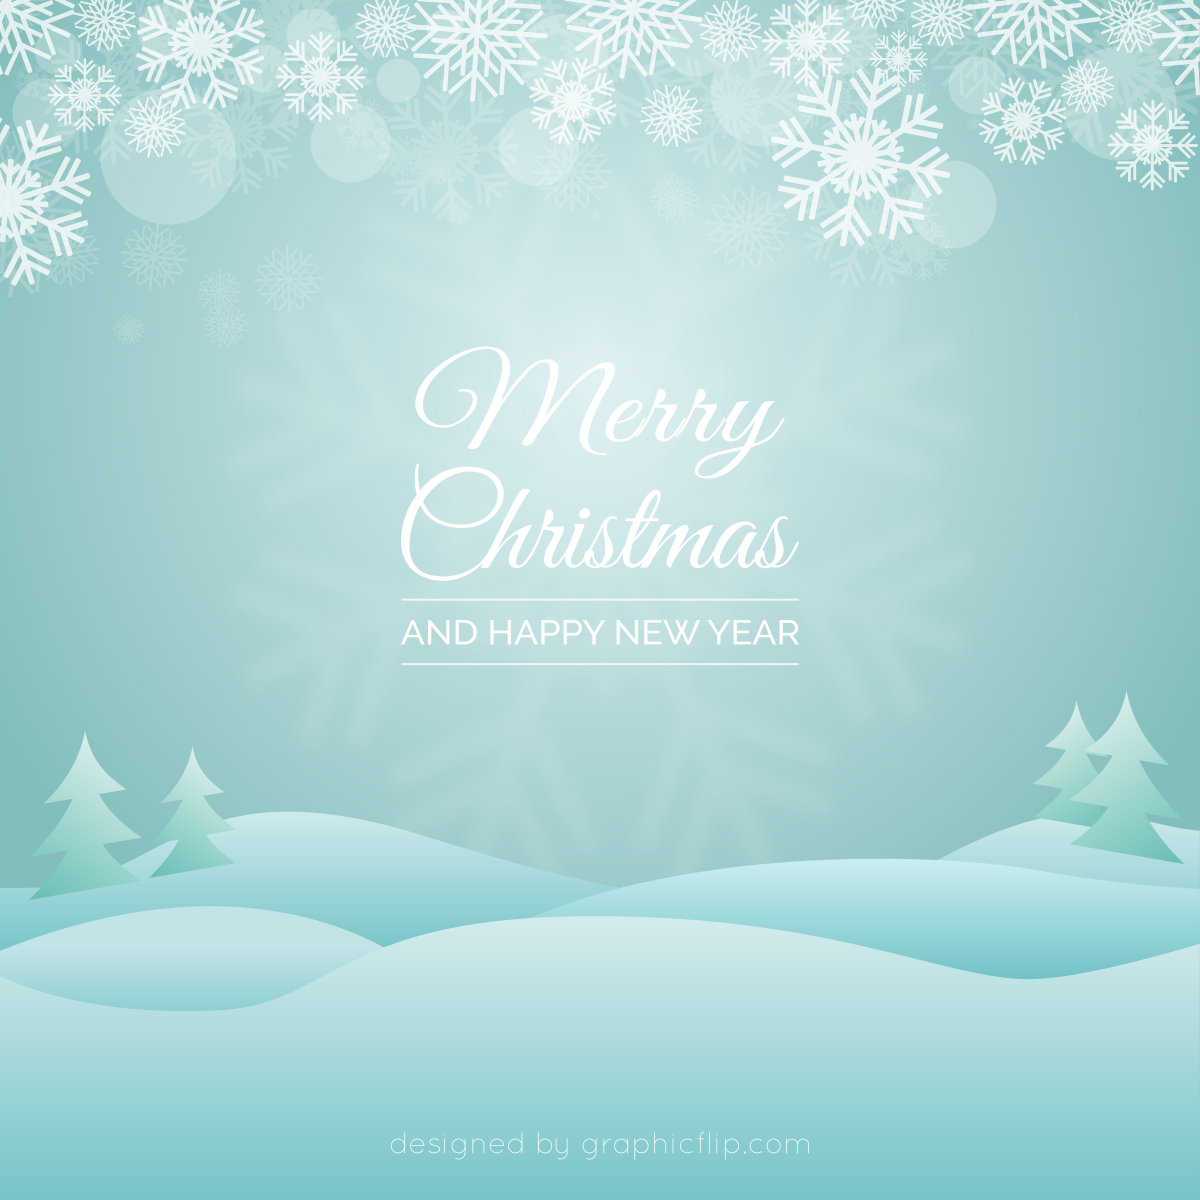 Free download christmas greeting vector with snowy landscape snowy christmas greeting m4hsunfo